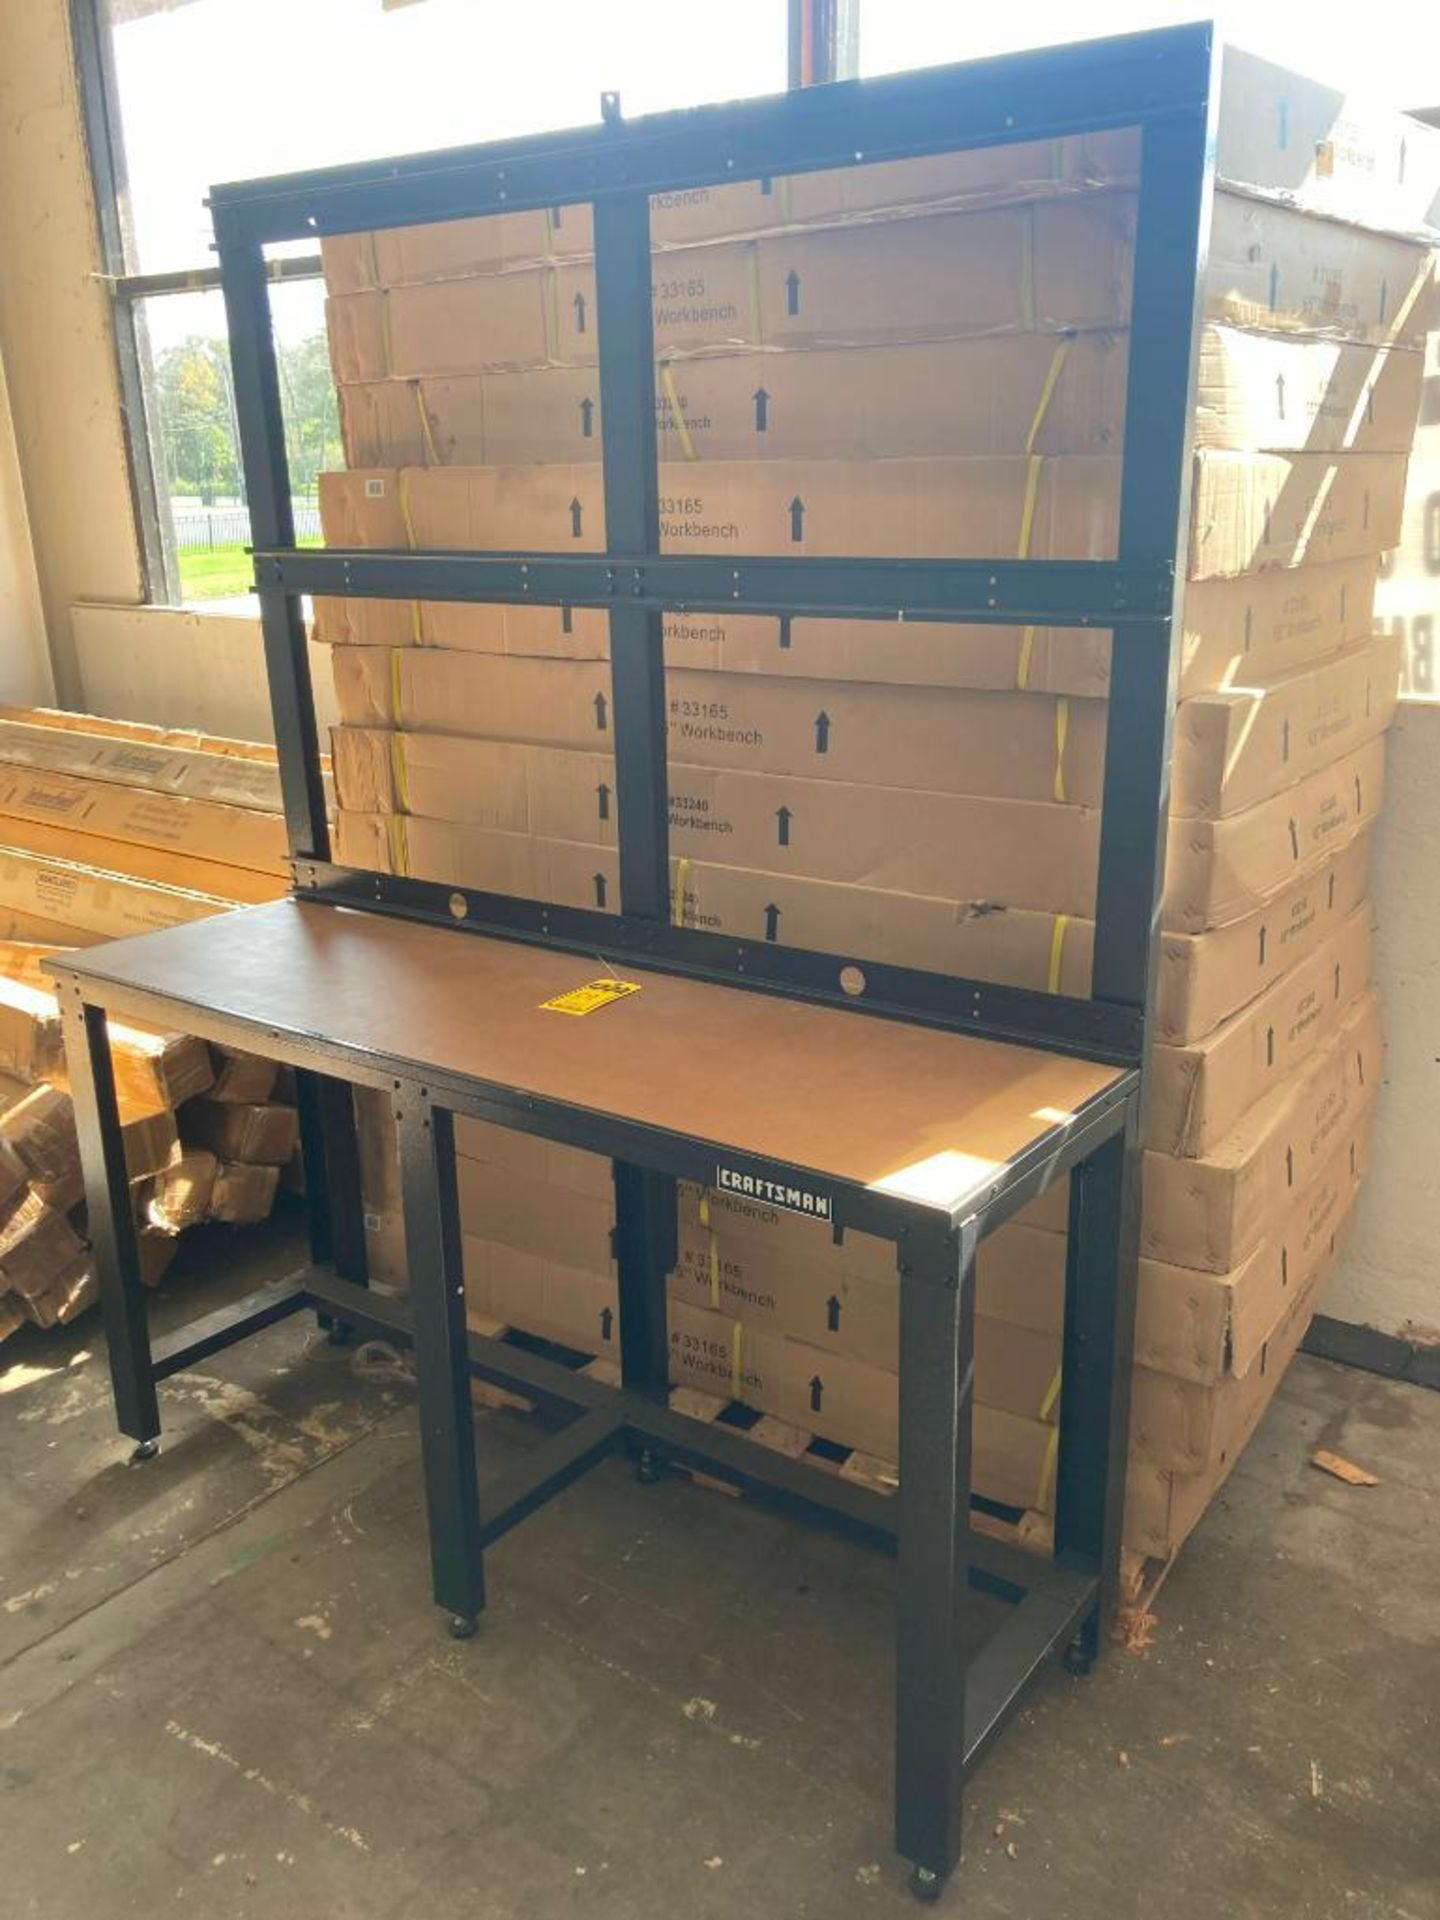 (5X) (NEW) SEARS CRAFTSMAN WORKBENCHES, 6-LEG, 65'' X 20'', ADJUSTABLE FEET, UPRIGHT WALL BACKS INCL - Image 2 of 2